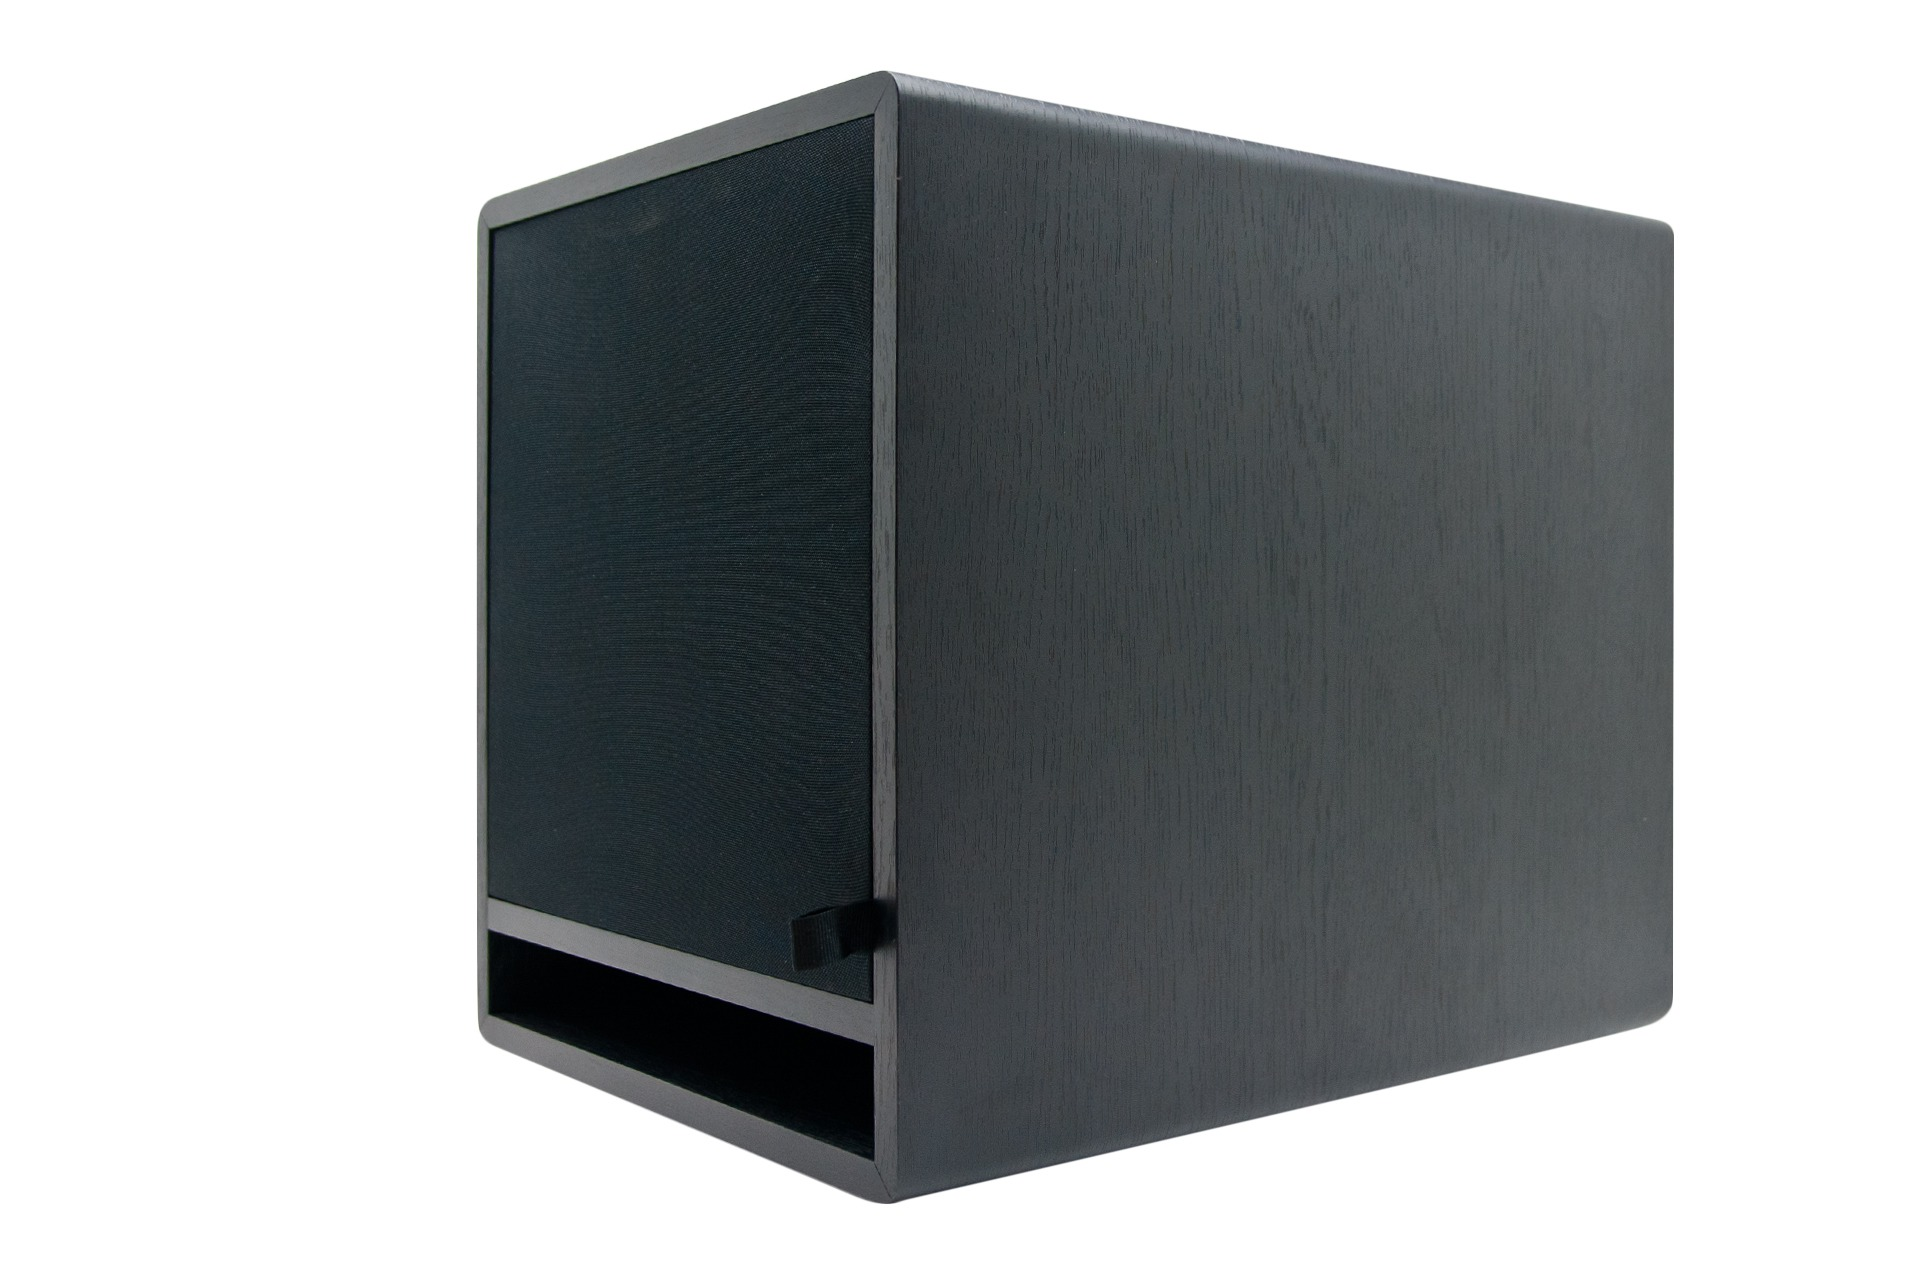 Earthquake FF-10 subwoofer